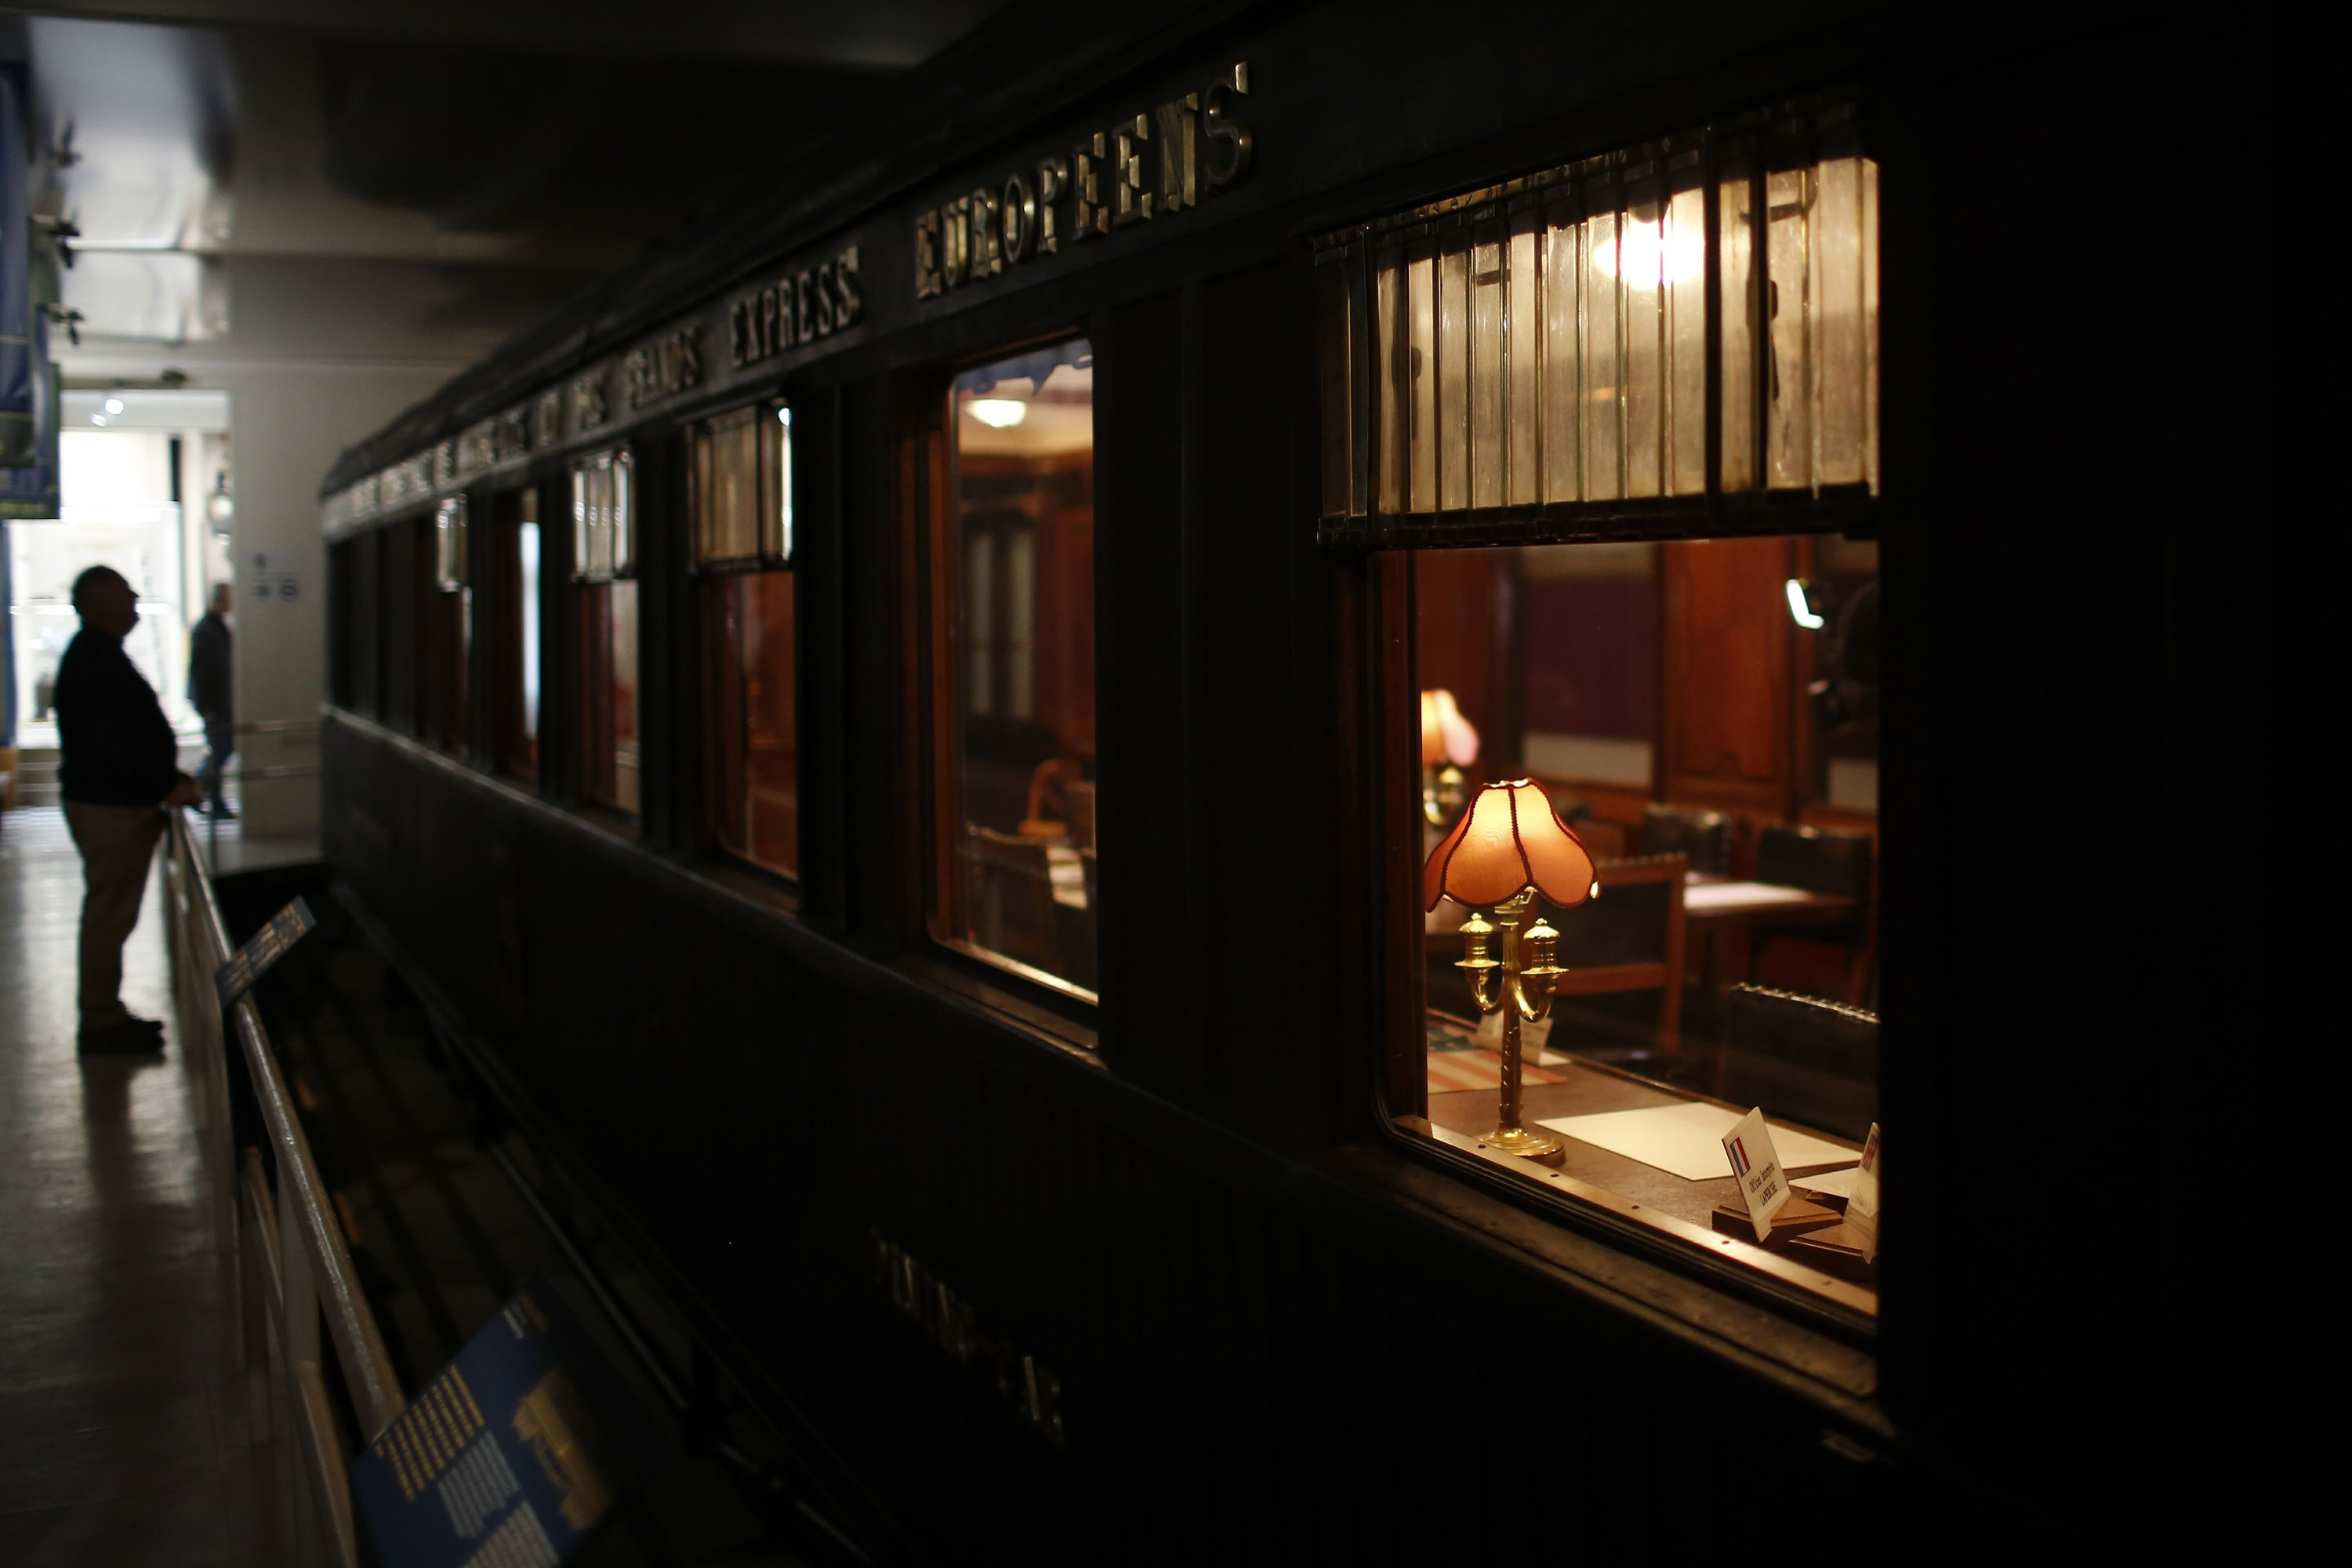 Hitler in war, Merkel in peace: A train car for history